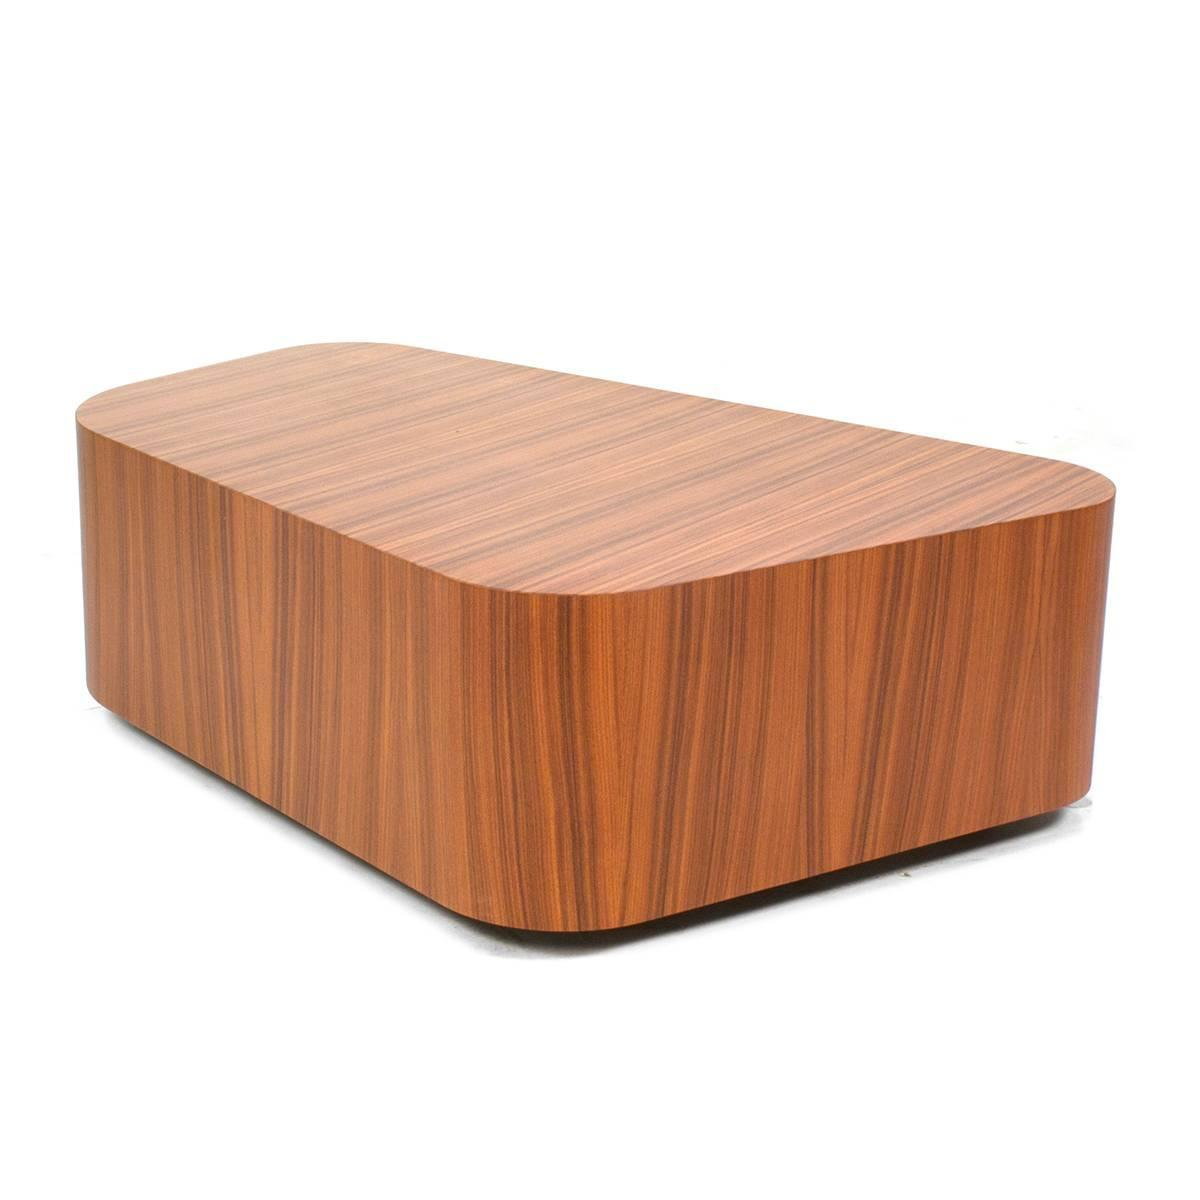 Wheeled Poltrona Frau Kennedee Coffee Table By Jean Marie Massaud Italy For Sale At 1stdibs